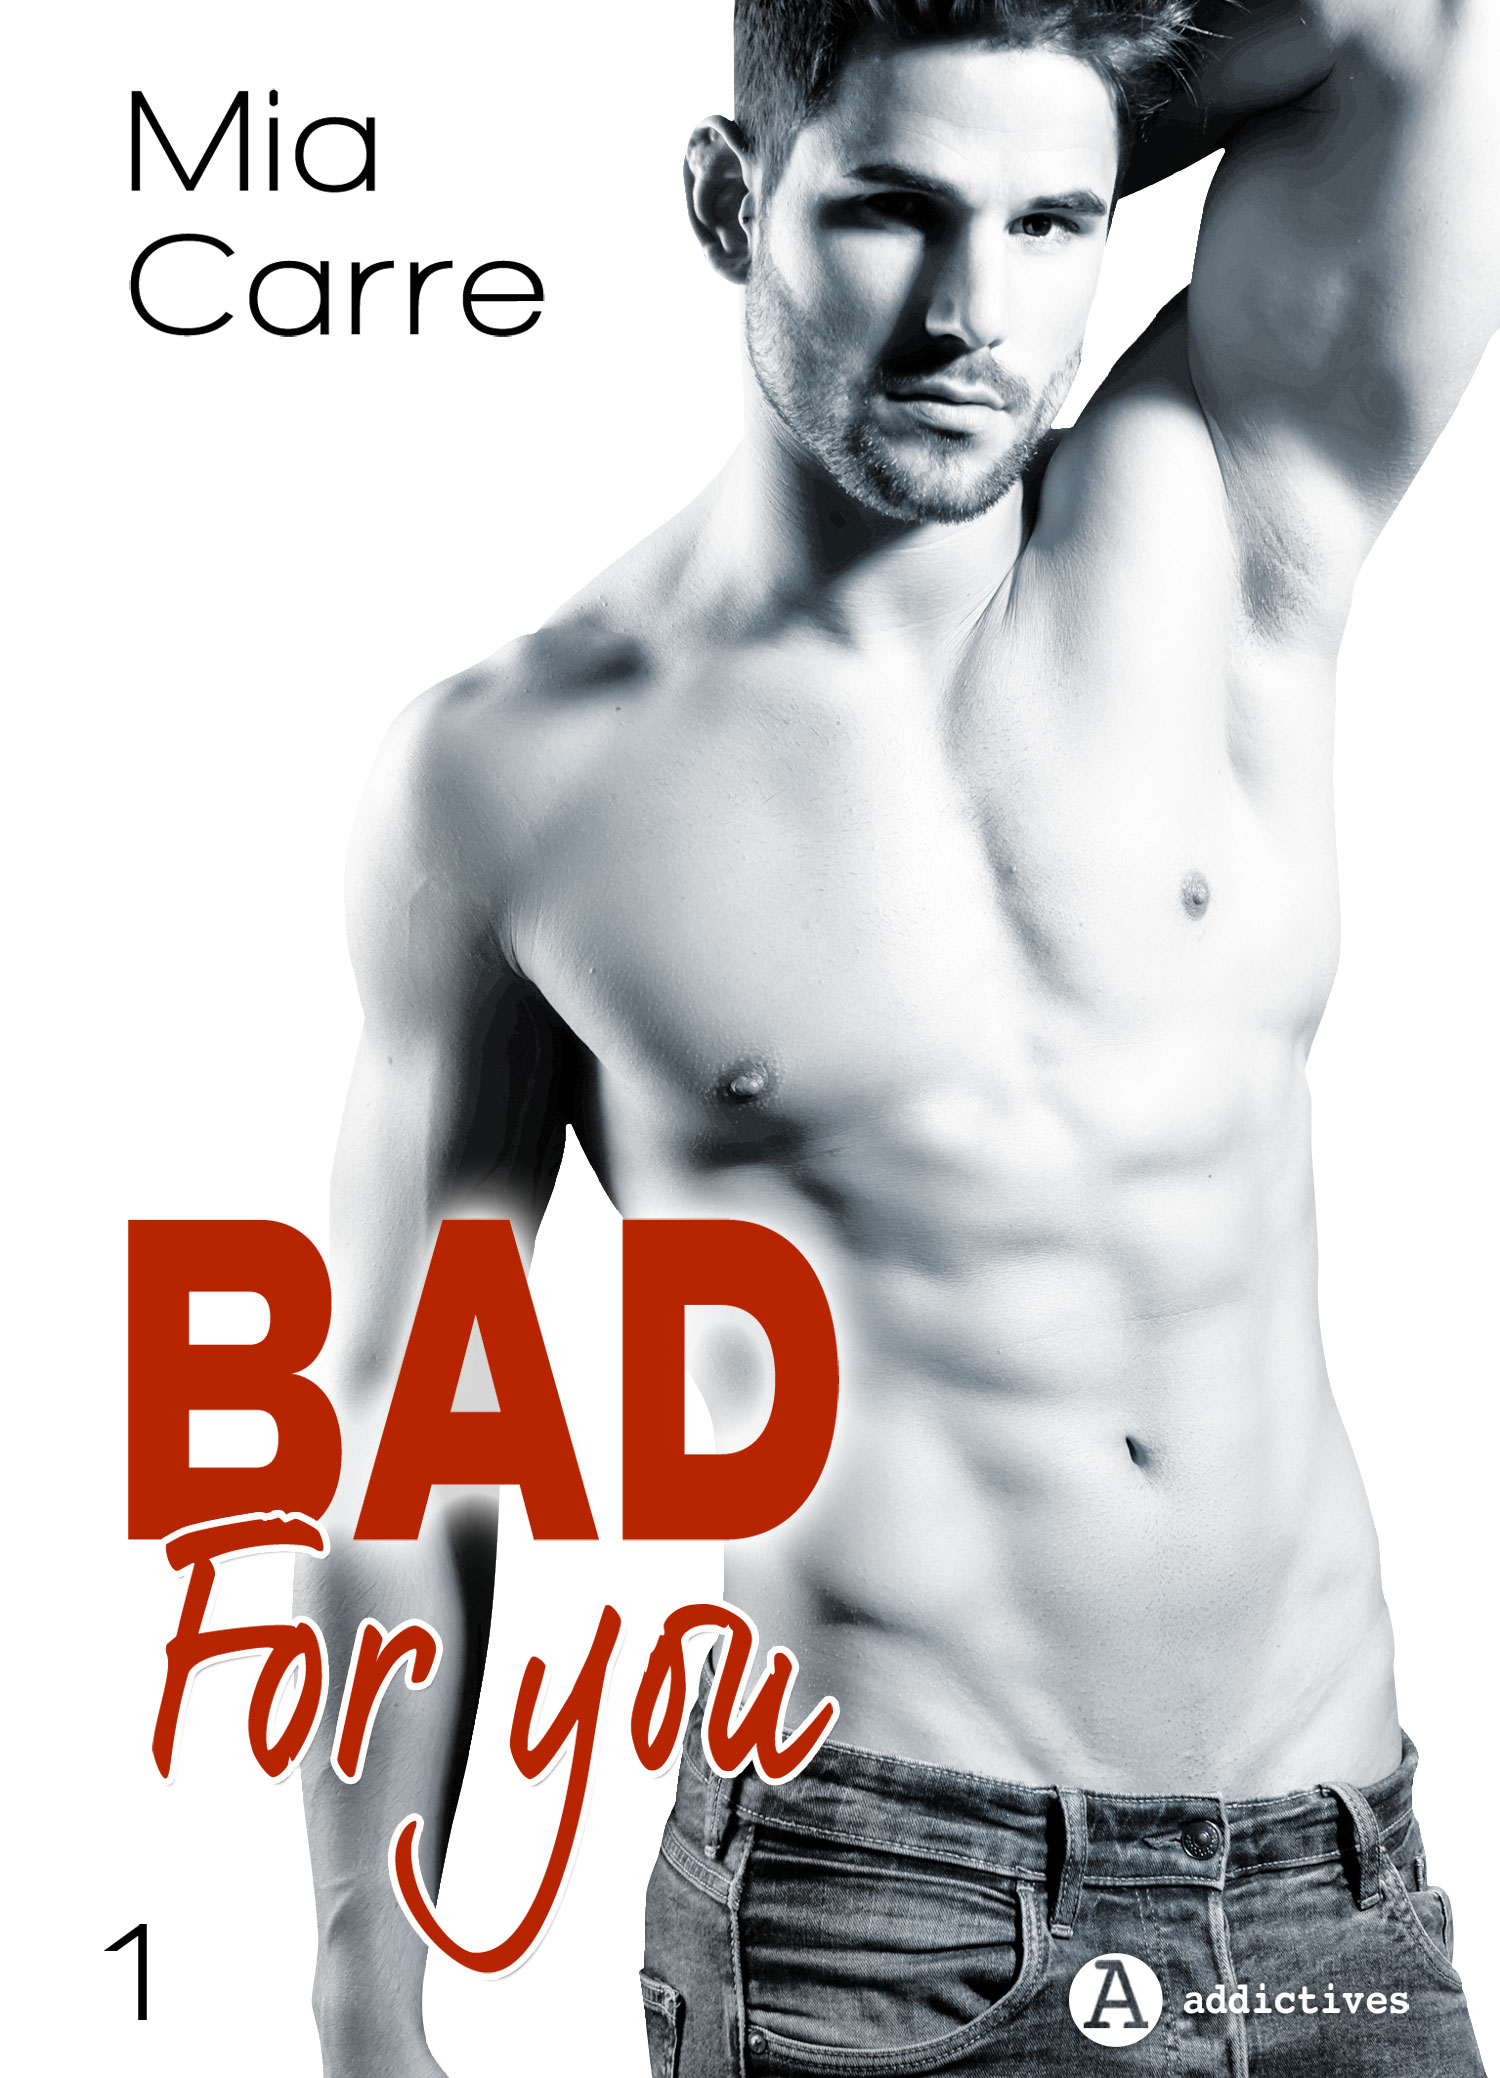 Bad for you – 1